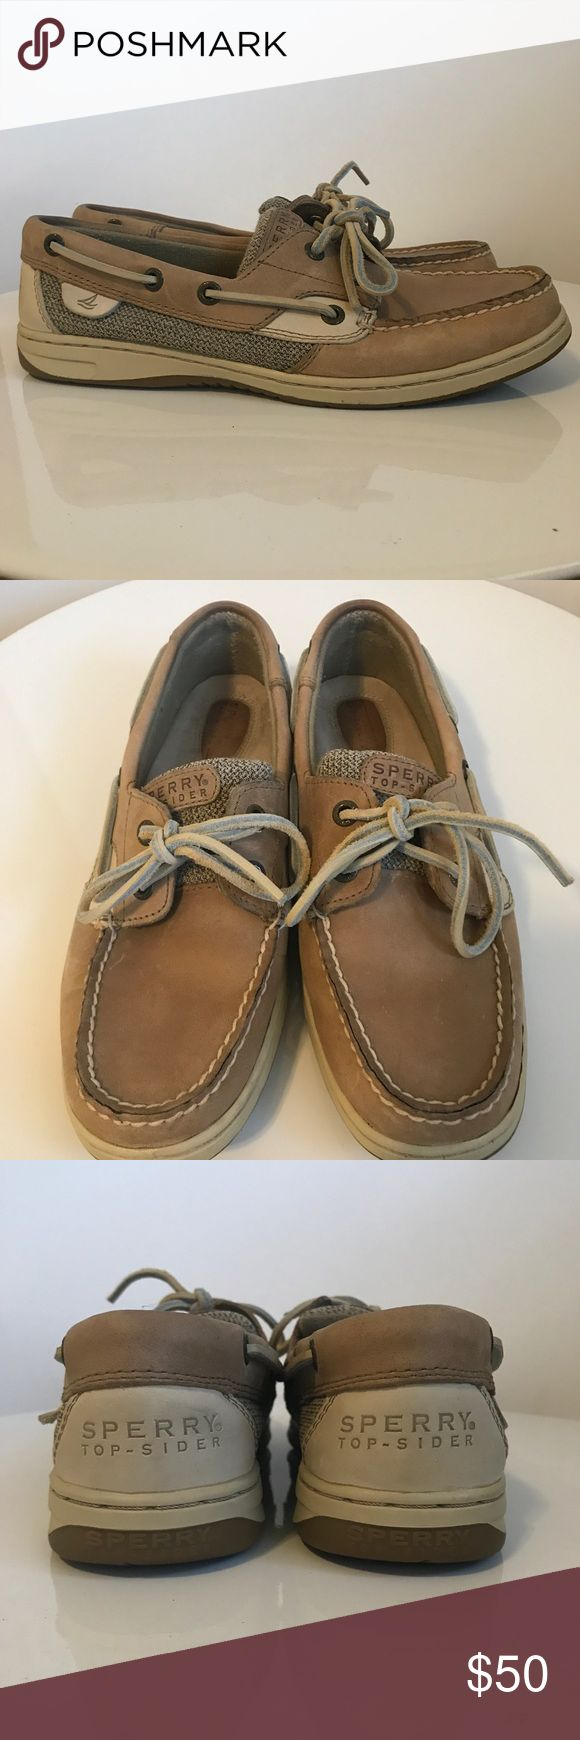 Sperry Top Sider Boat Shoes Sperry Top Sider Bluefish Boat shoe. Excellent used Condition. Only worn a few times. Sperry Shoes